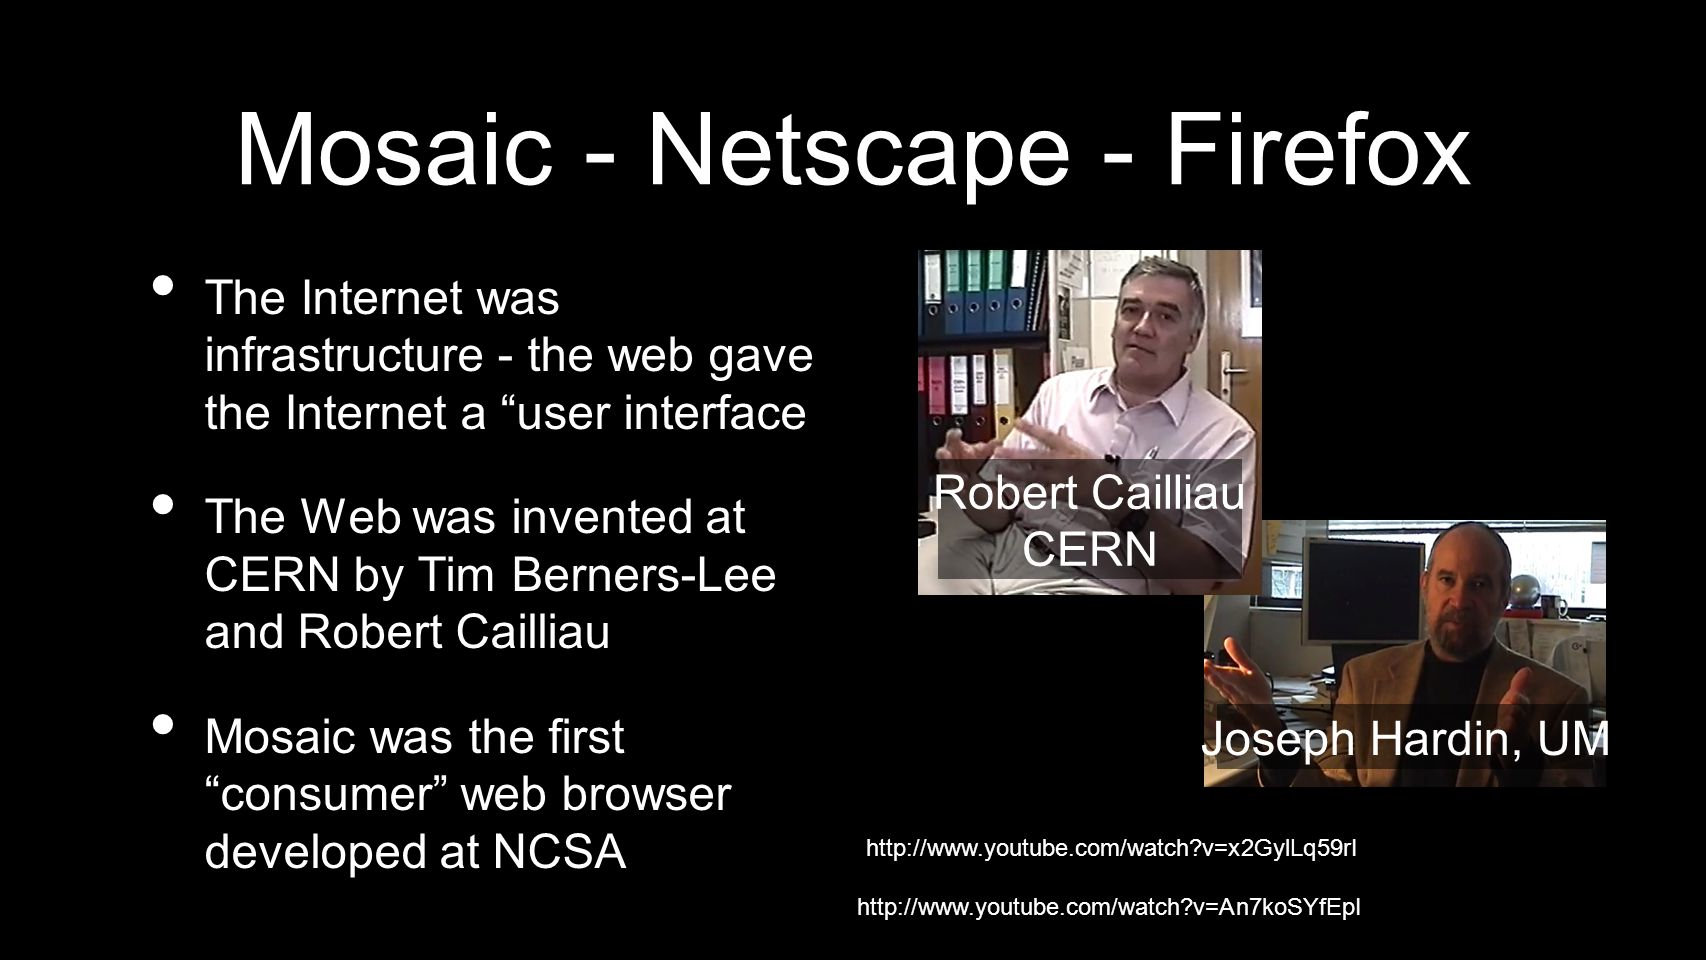 Joseph Hardin, UM Mosaic - Netscape - Firefox The Internet was infrastructure - the web gave the Internet a user interface The Web was invented at CER